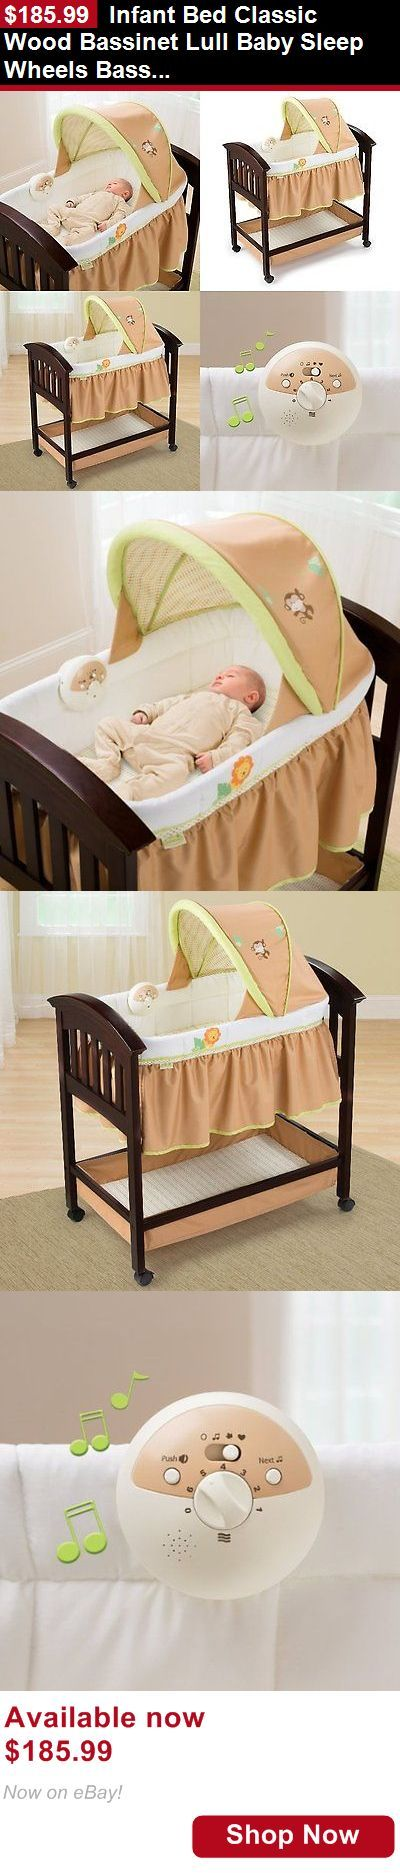 Baby Co-Sleepers: Infant Bed Classic Wood Bassinet Lull Baby Sleep Wheels Bassinet Mattress Room BUY IT NOW ONLY: $185.99